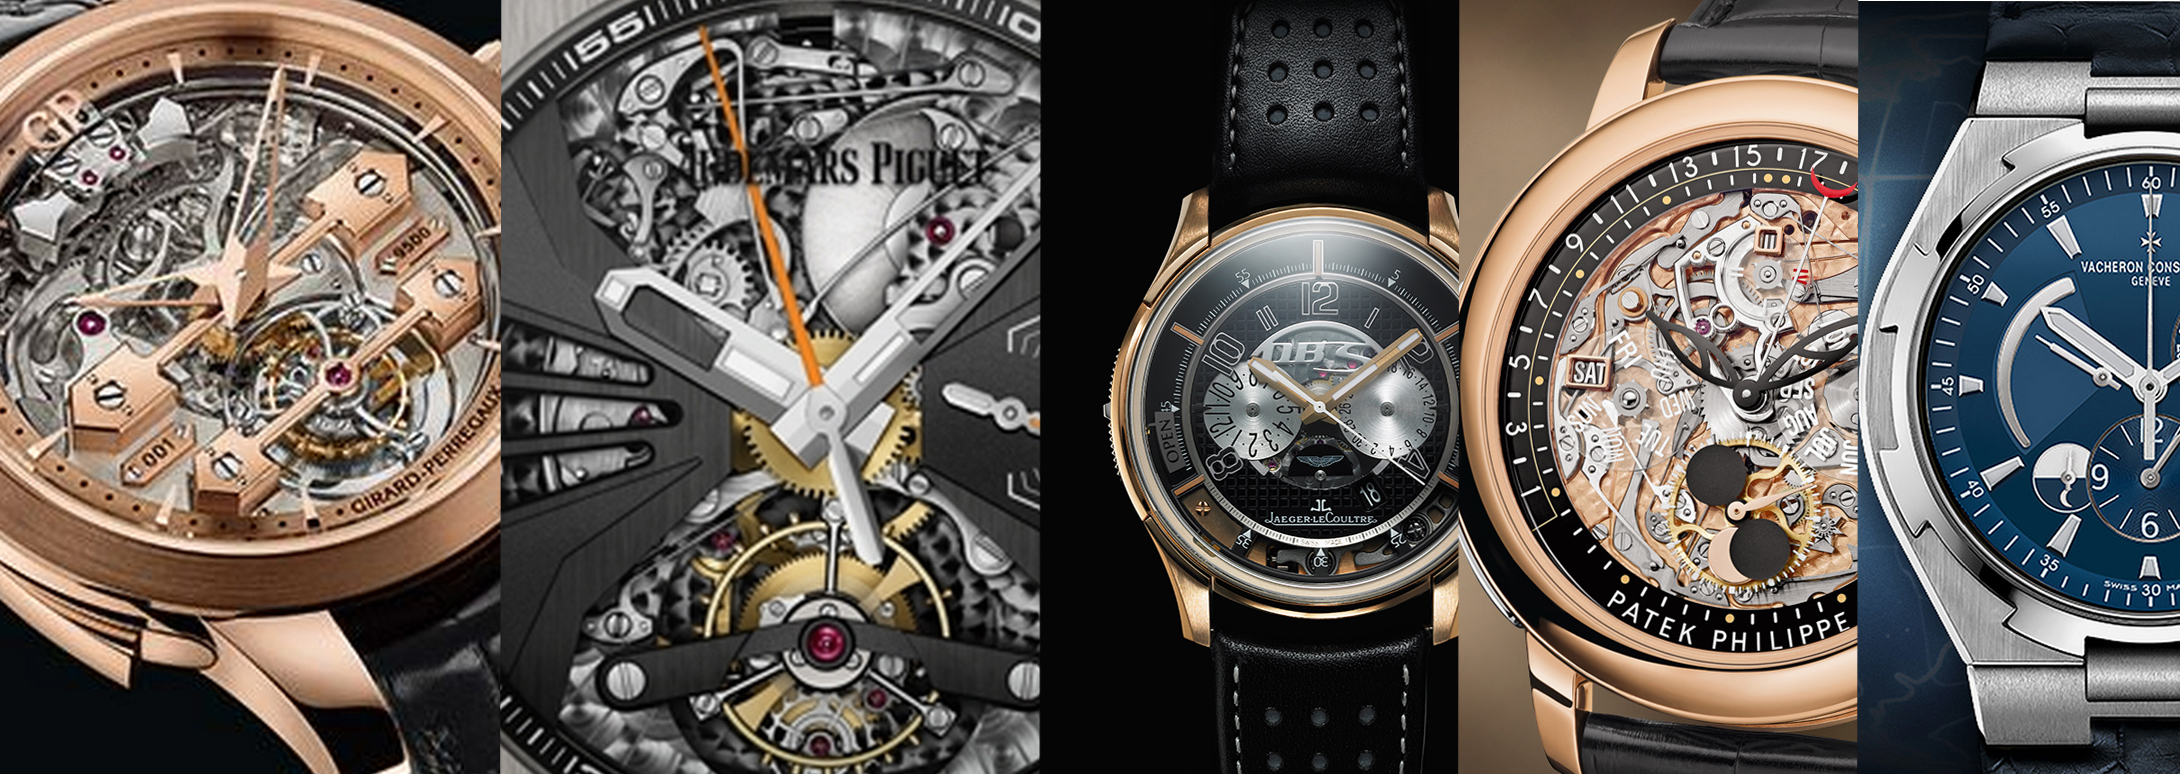 5 Watch Brands More Luxurious Than Rolex